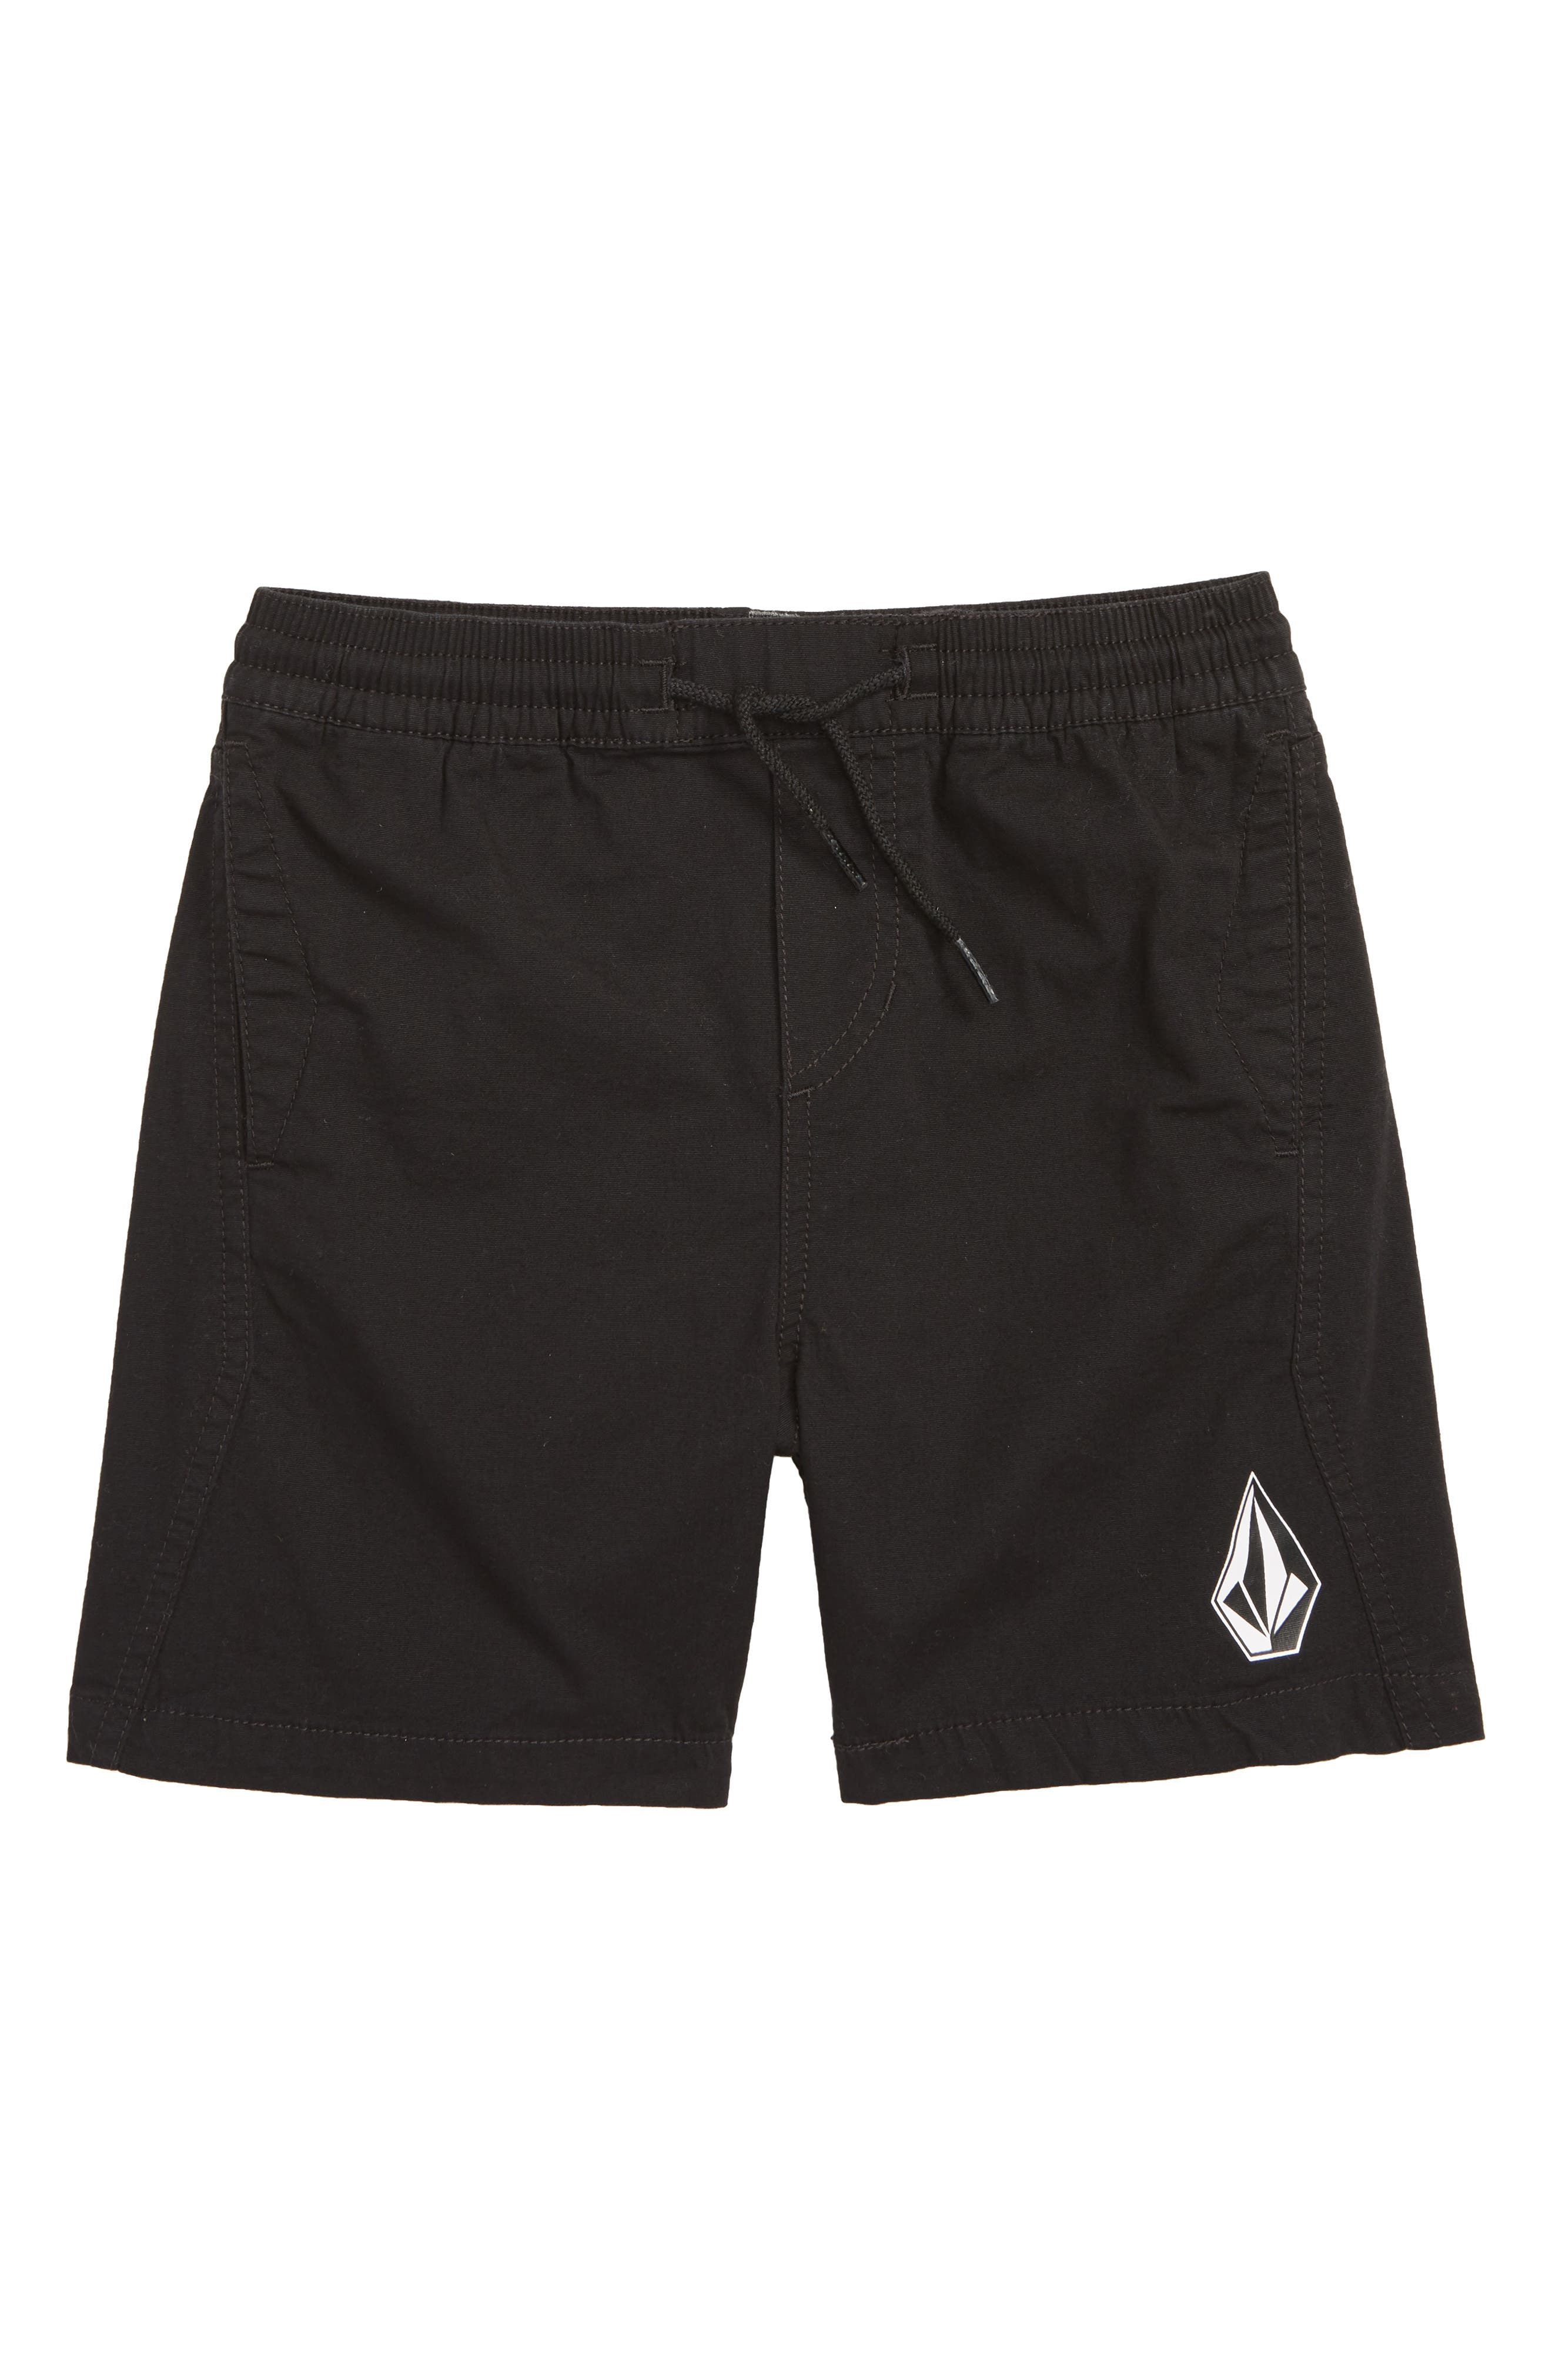 Deadly Stones Shorts,                         Main,                         color, 001